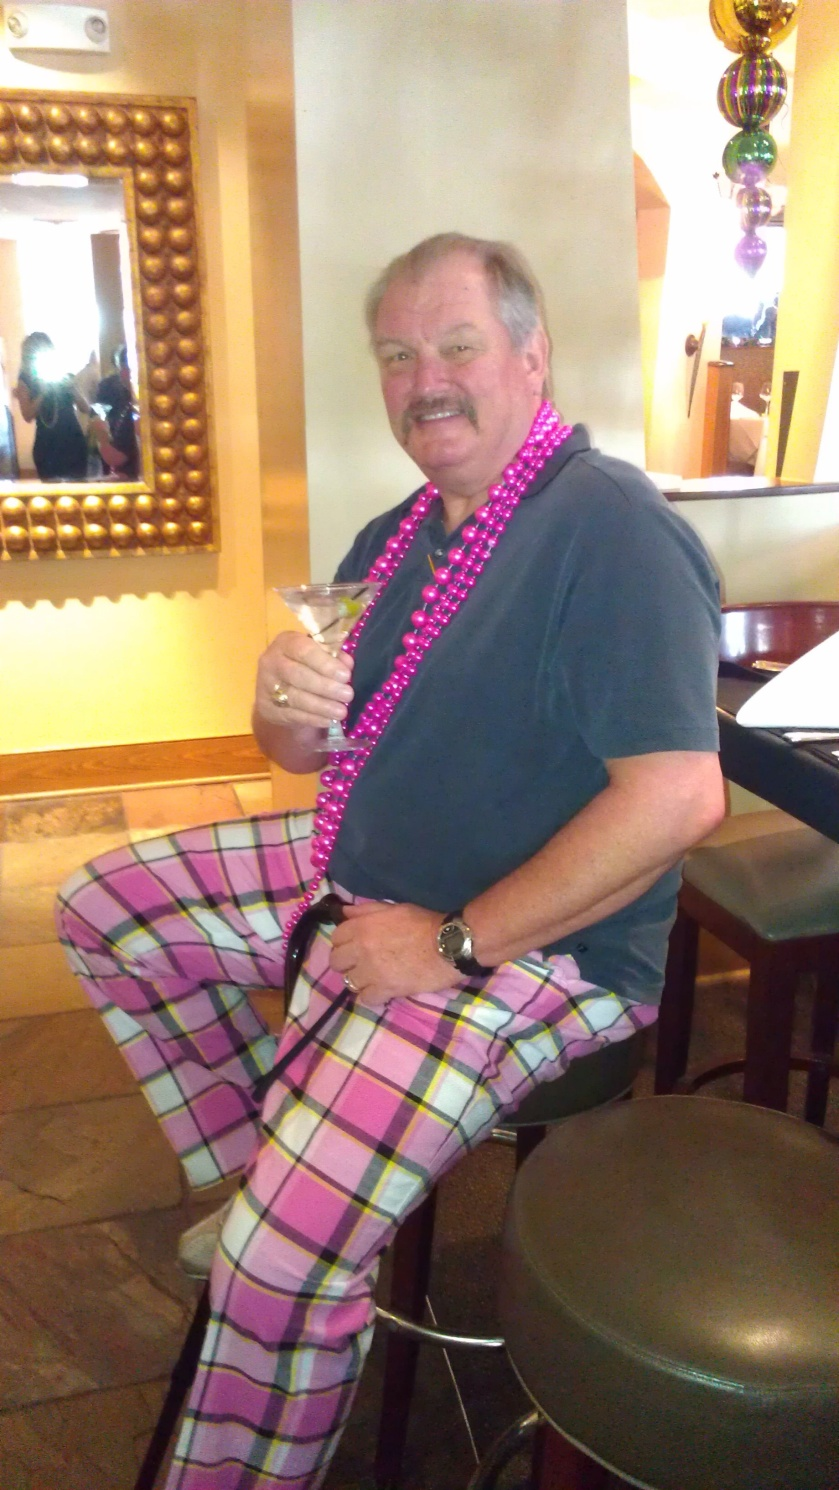 Mardi Gras time and he is out and about!!   A cane and pink pants...